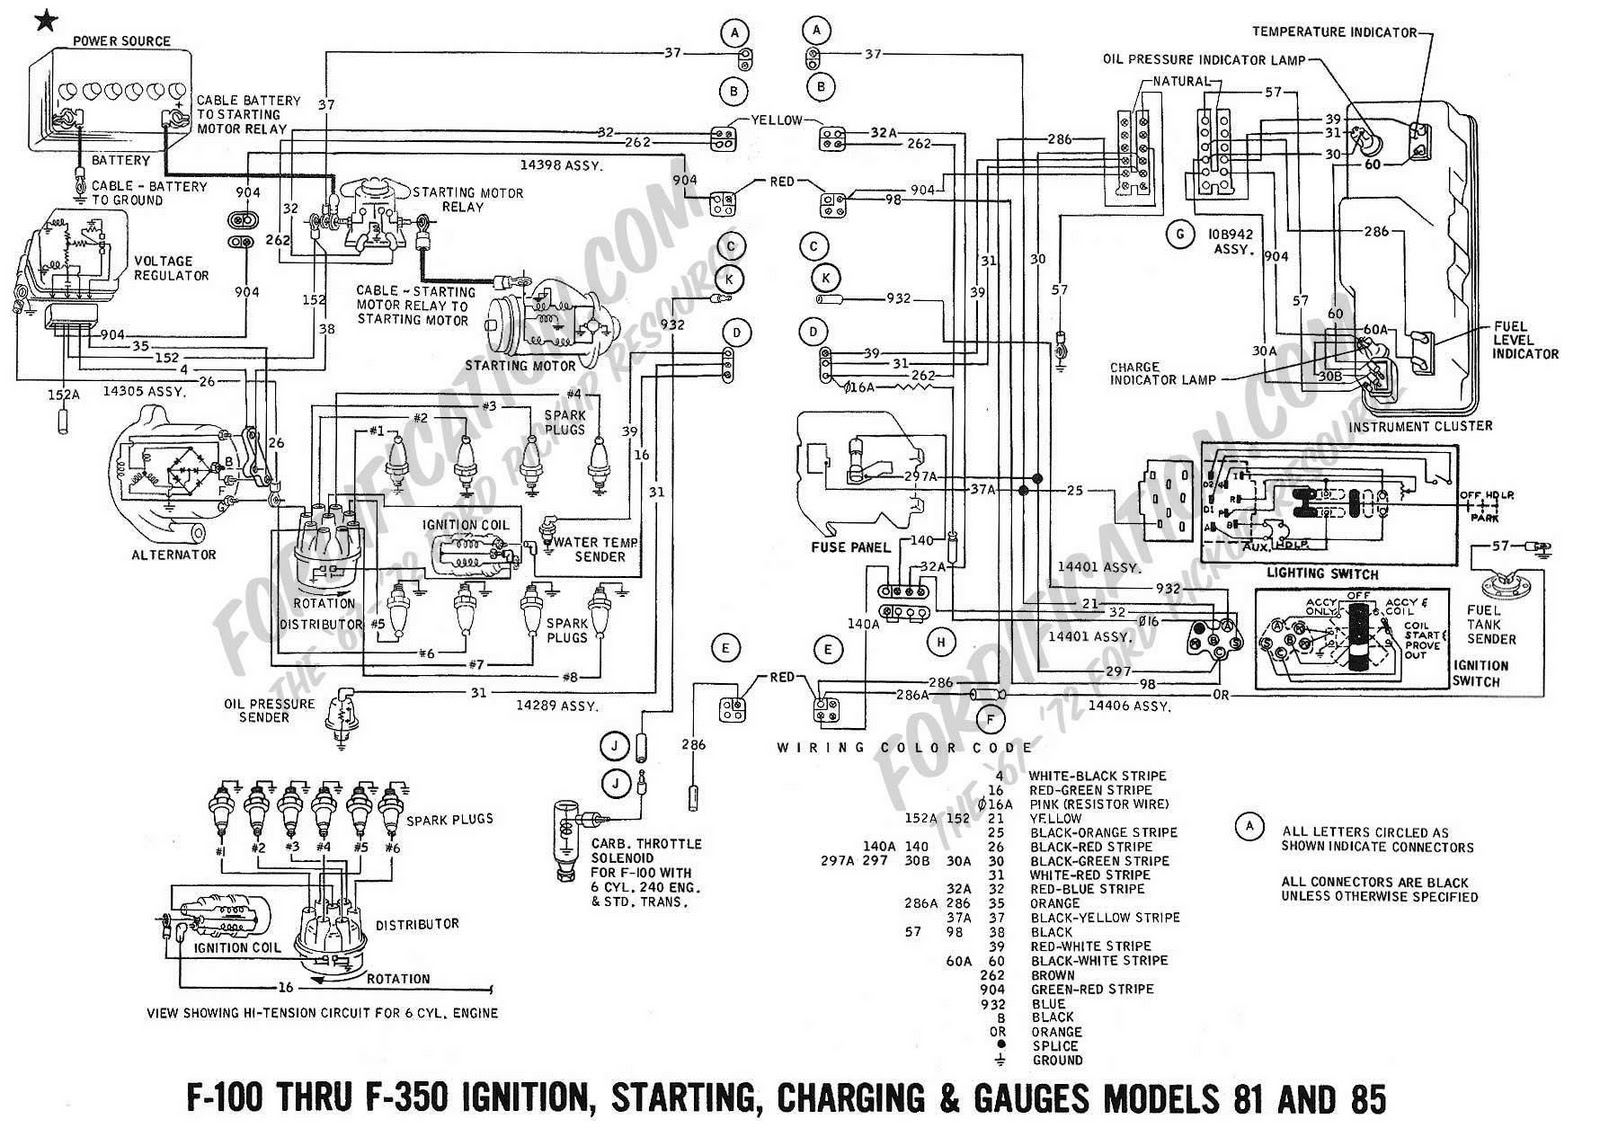 1969 ford f 250 wiring diagram 9 9 ulrich temme de \u20221968 bronco wiring diagram online wiring diagram rh 2 japanizm co 1968 ford f 250